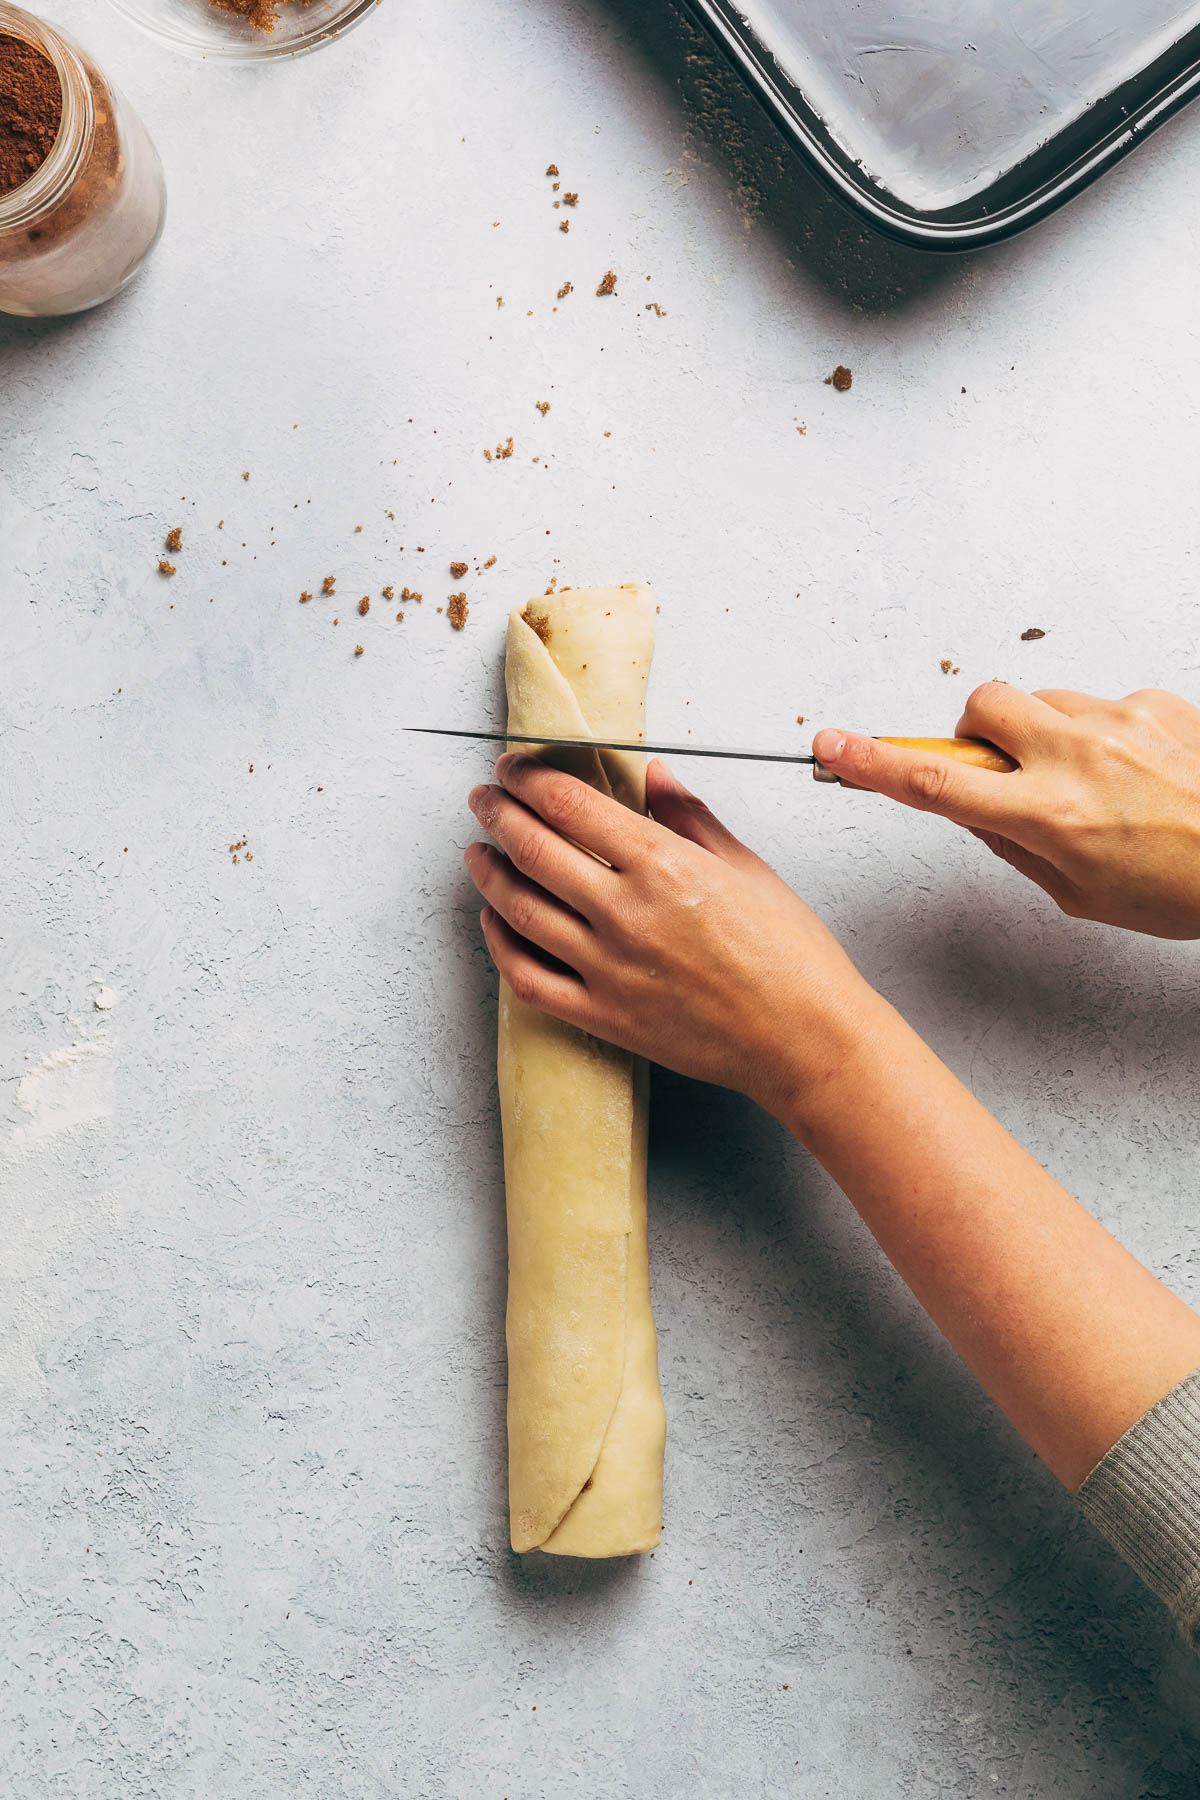 Cutting dough into individual rolls.